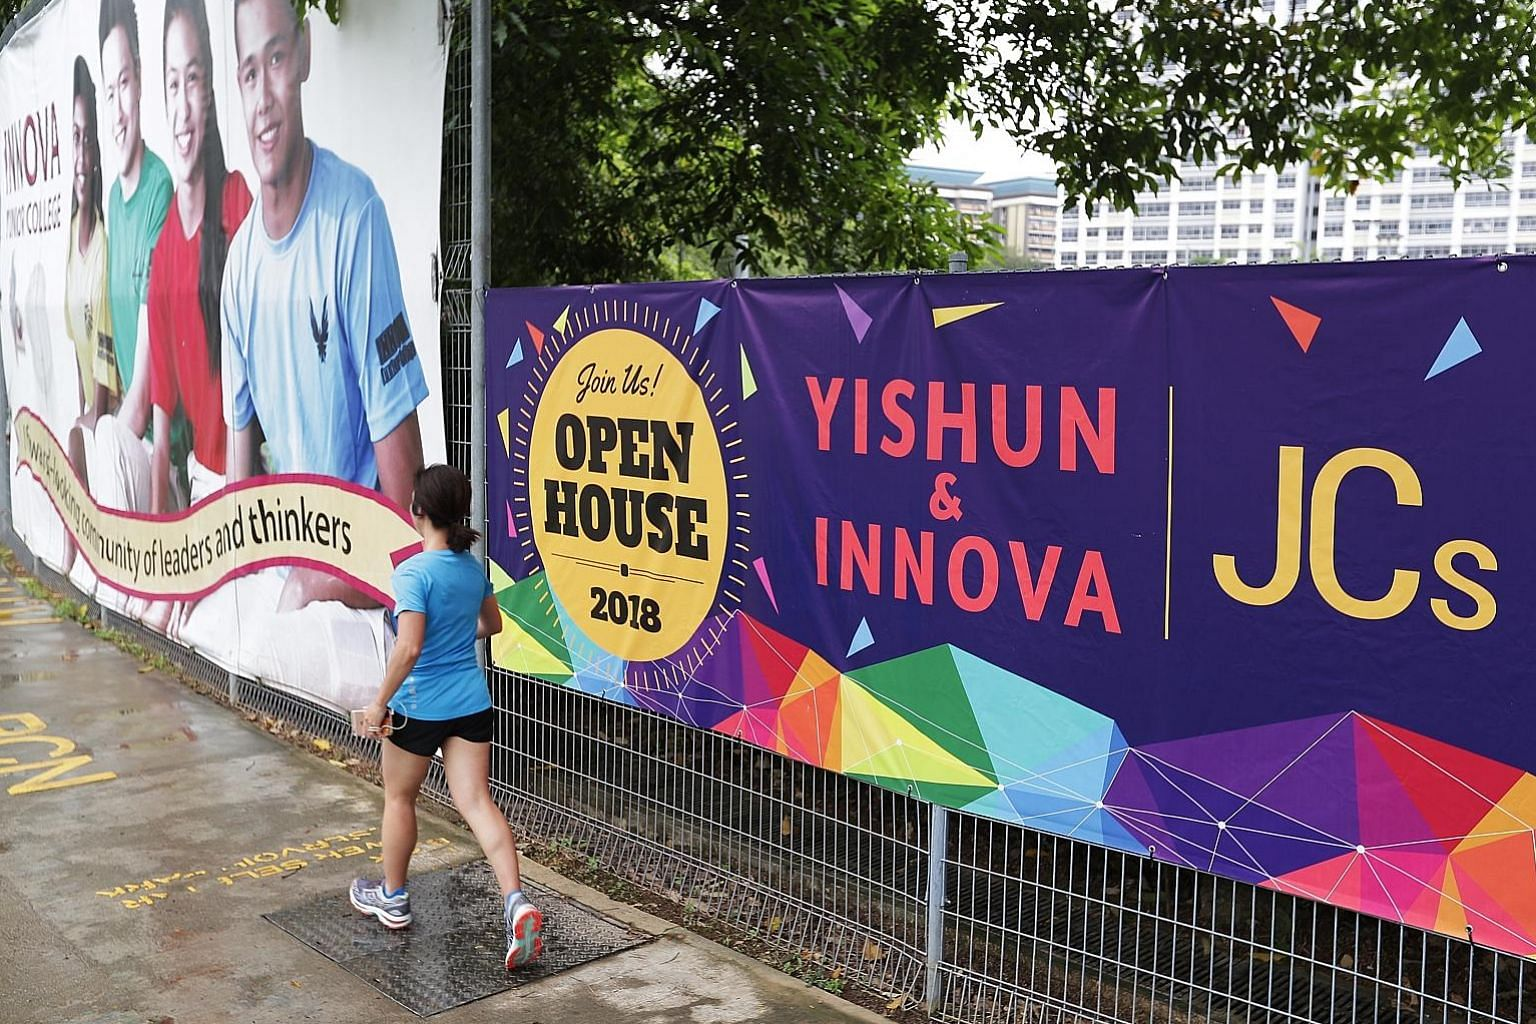 In the first phase, Yishun Innova JC will be upgraded and three JCs - Anderson Serangoon JC, Jurong Pioneer JC and Temasek JC - will be rebuilt.